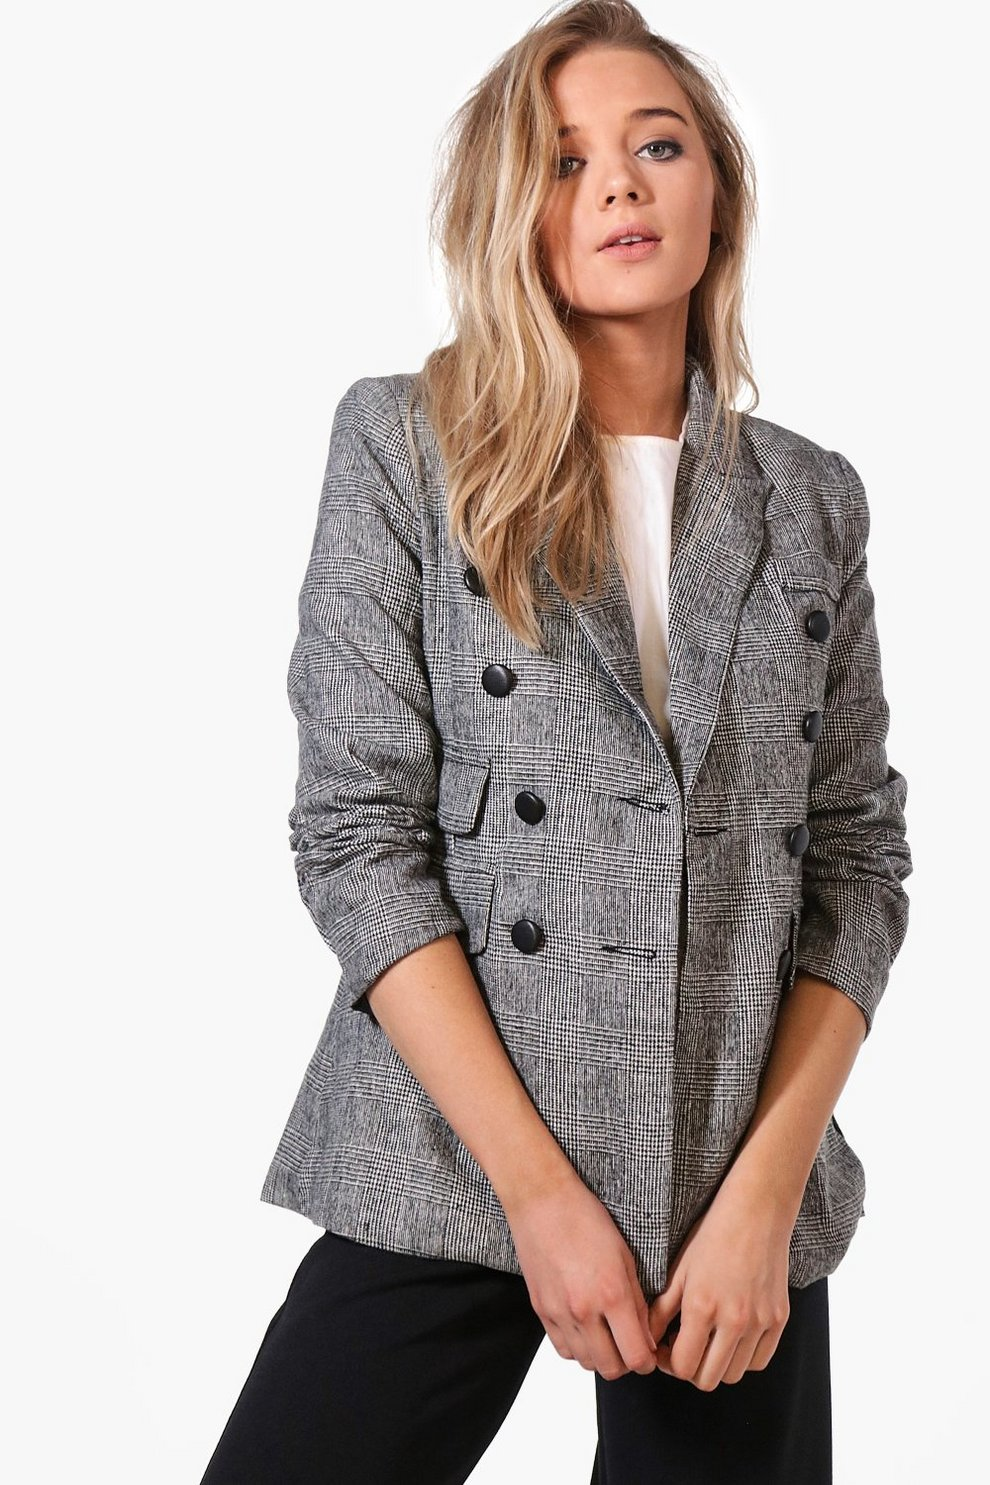 Boohoo Blazer Coat Free Shipping Extremely Clearance Recommend Clearance Cheap Online Discount Cheap Online For Sale Cheap Price eXZ0IDQjDt